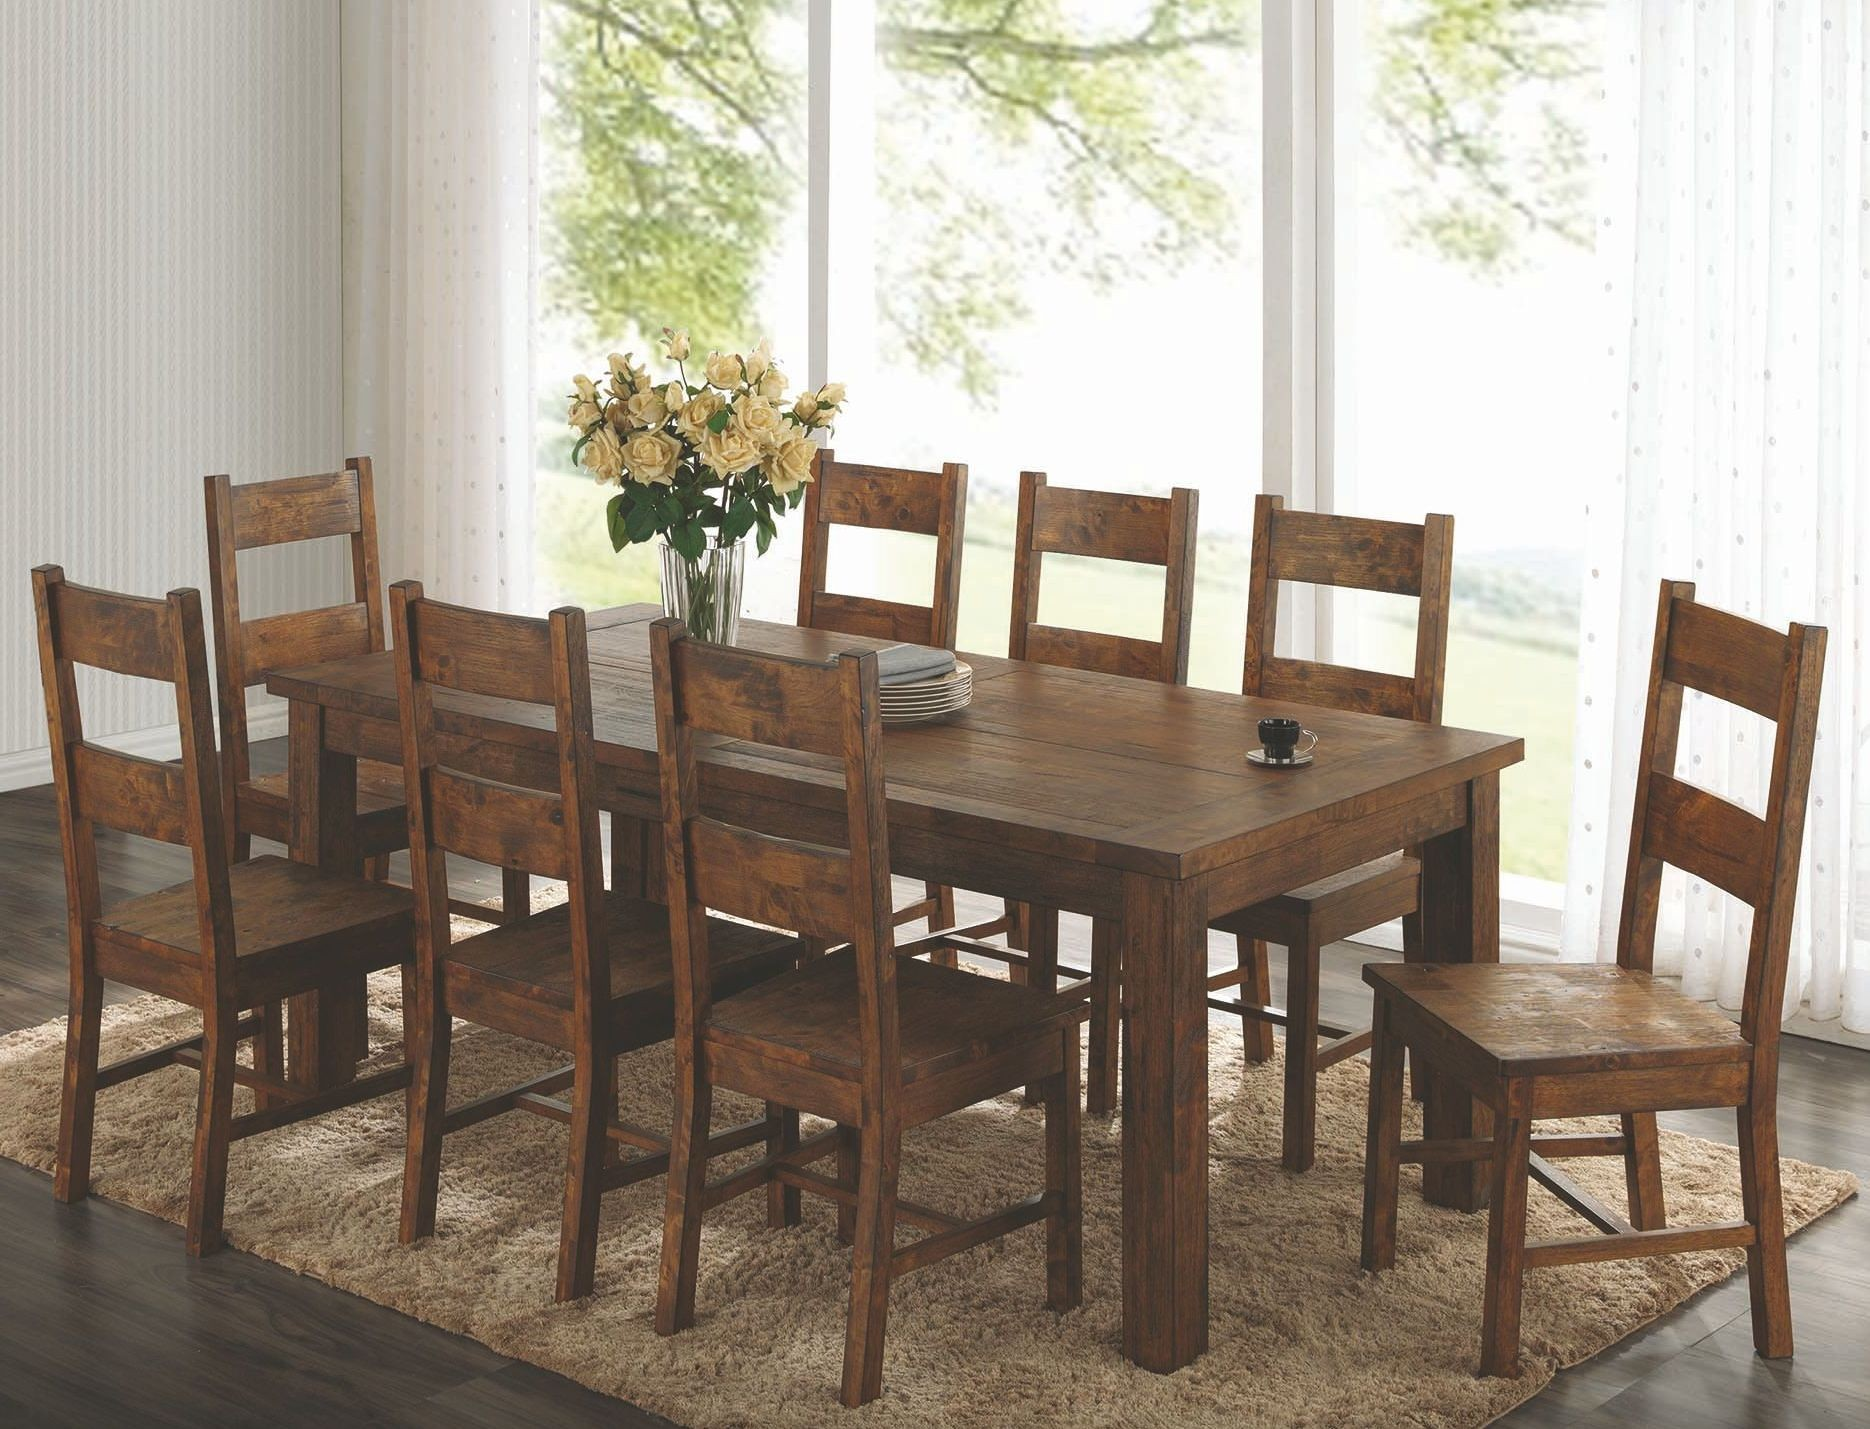 Dining Room Furniture Rustic Coleman Rustic Golden Brown Rectangular Dining Room Set